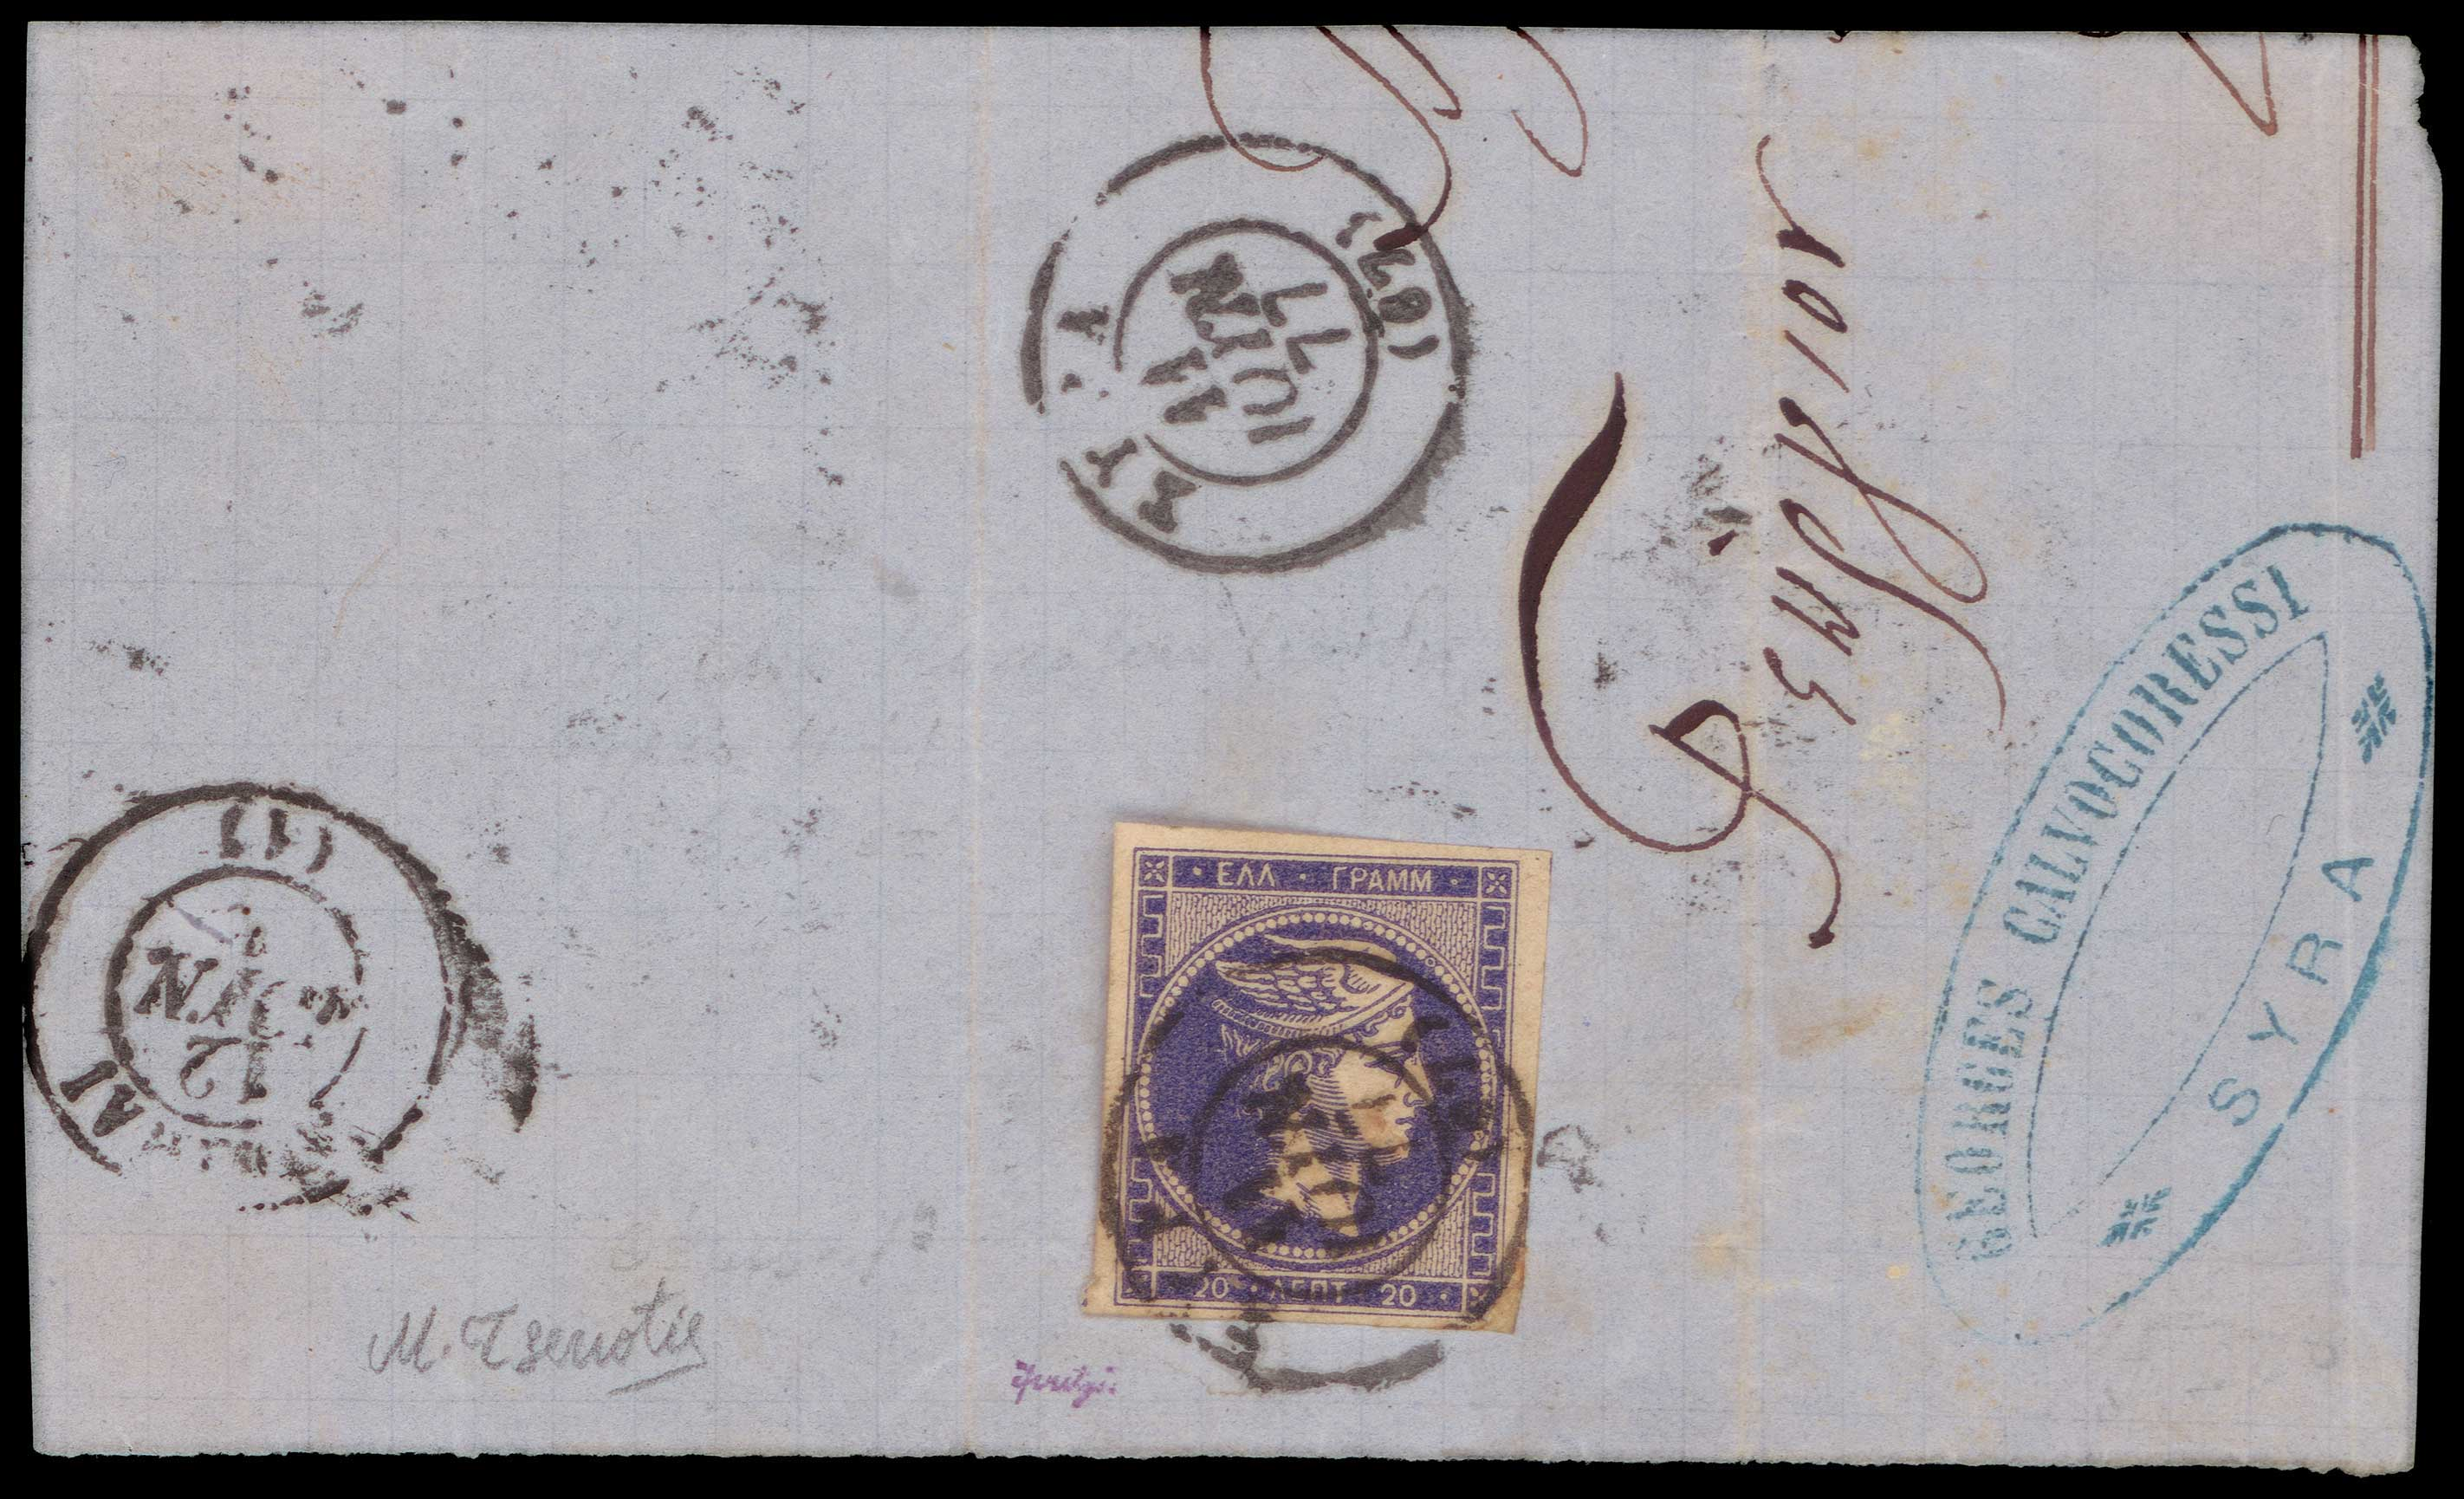 Lot 191 - -  LARGE HERMES HEAD 1875/80 cream paper -  A. Karamitsos Public & Live Internet Auction 666 Large Hermes Heads Exceptional Stamps from Great Collections